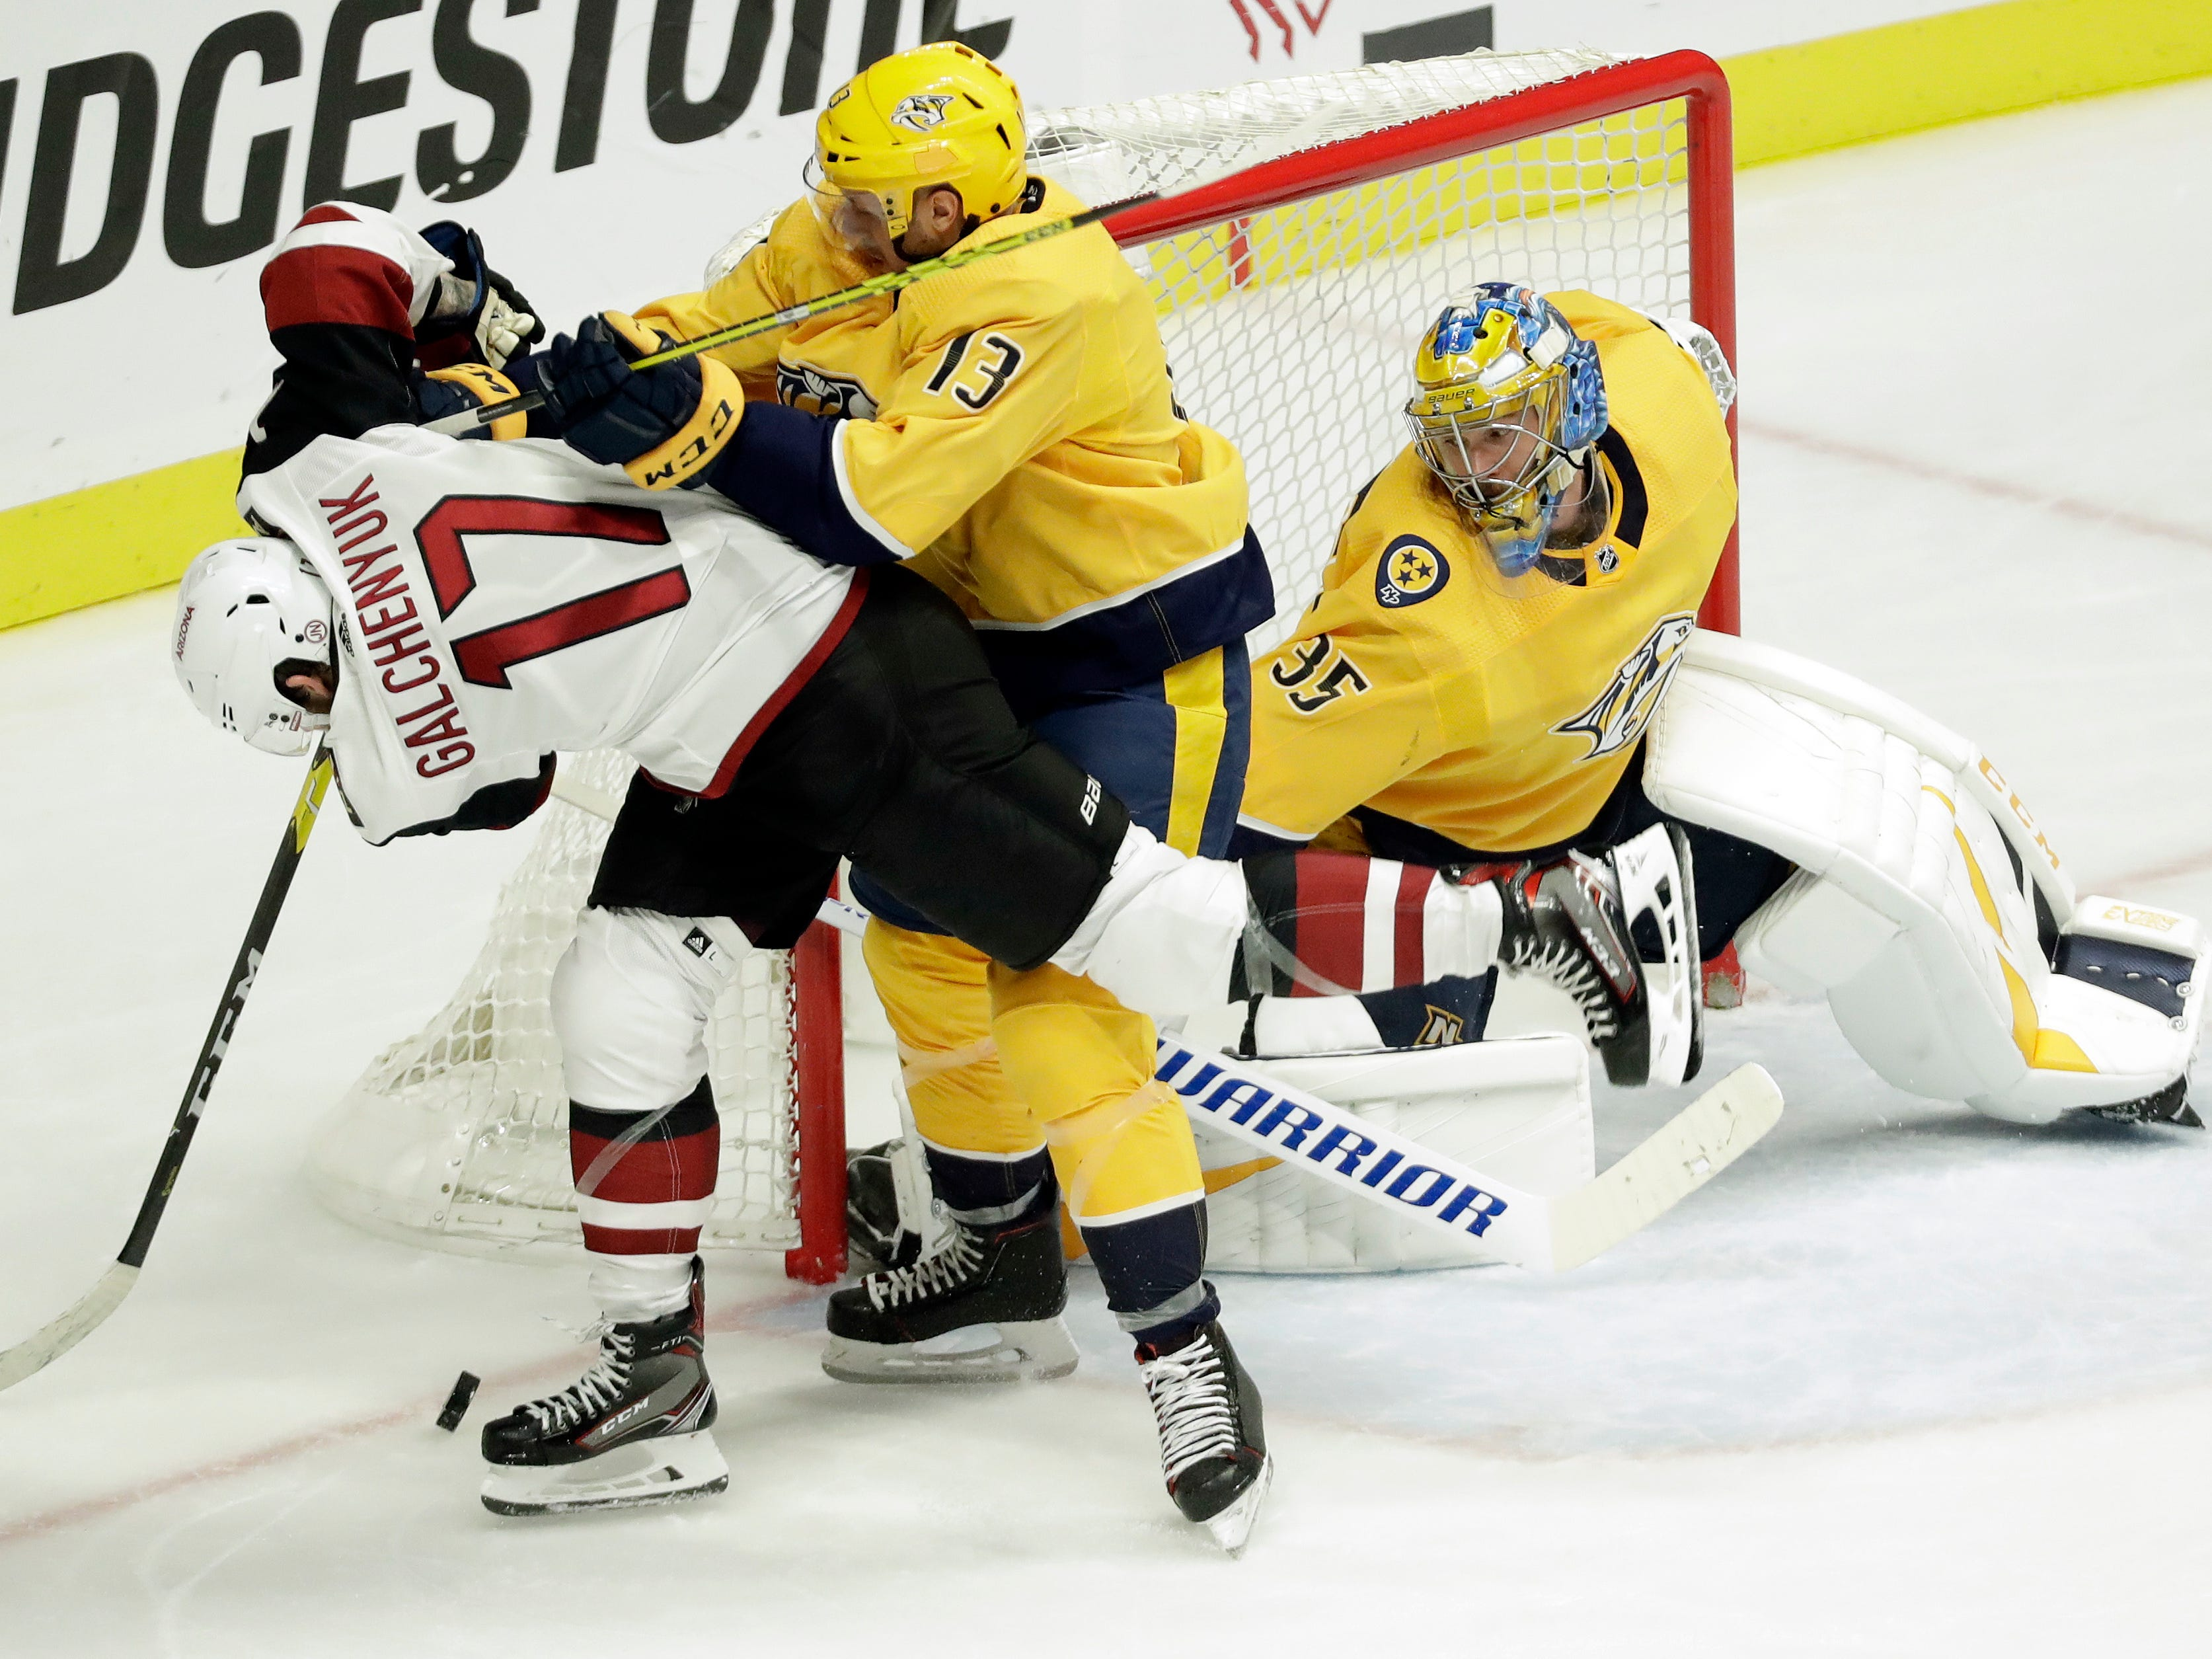 Arizona Coyotes center Alex Galchenyuk (17) is checked by Nashville Predators center Nick Bonino (13) as goaltender Pekka Rinne (35), of Finland, guards the net in the third period of an NHL hockey game Thursday, Nov. 29, 2018, in Nashville, Tenn. (AP Photo/Mark Humphrey)